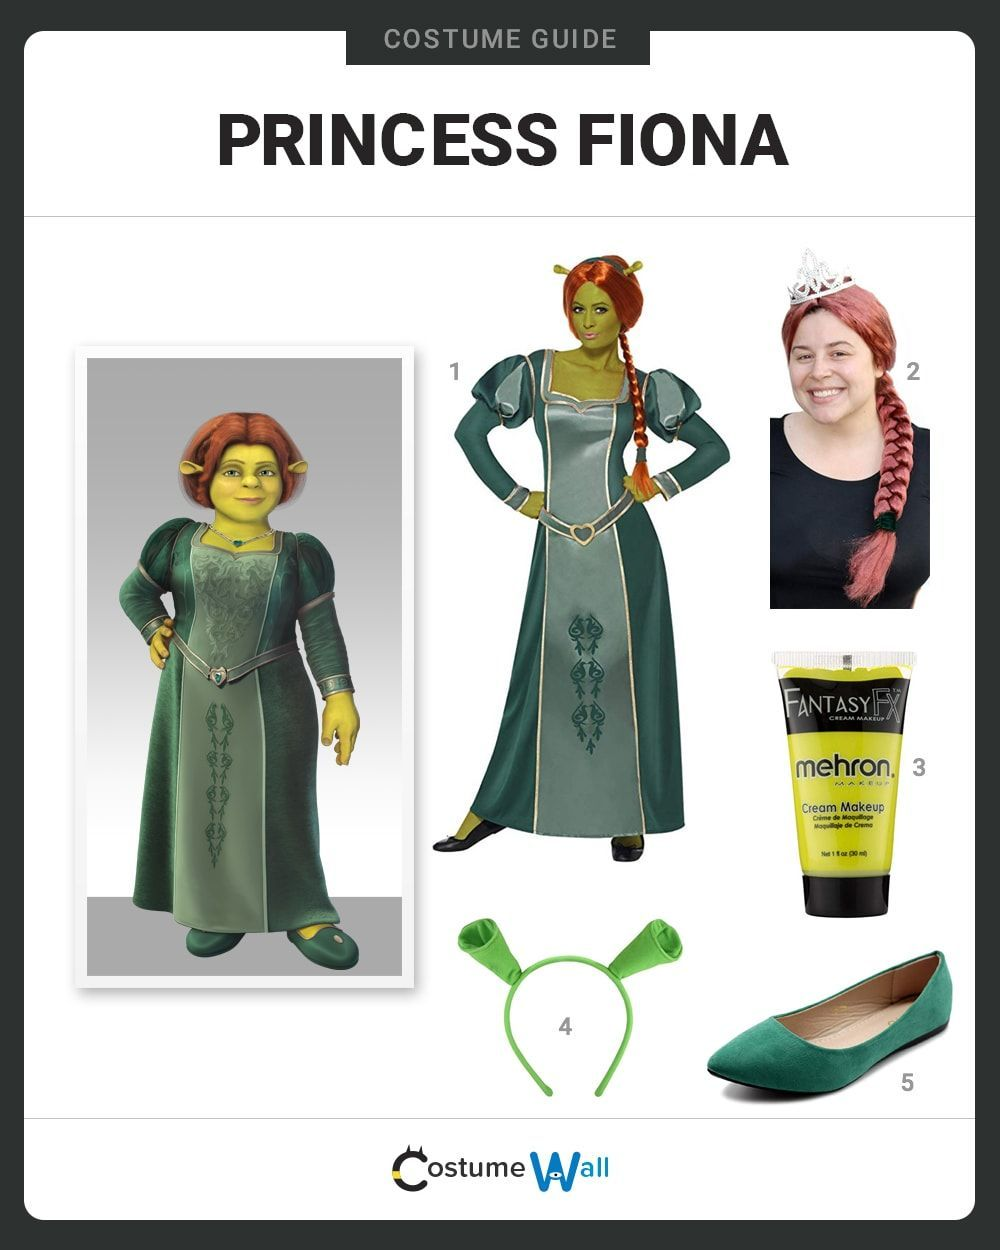 Who Dressws Up As Fiona For Halloween 2020 Dress Like Princess Fiona in 2020   Princess fiona, Fiona costume